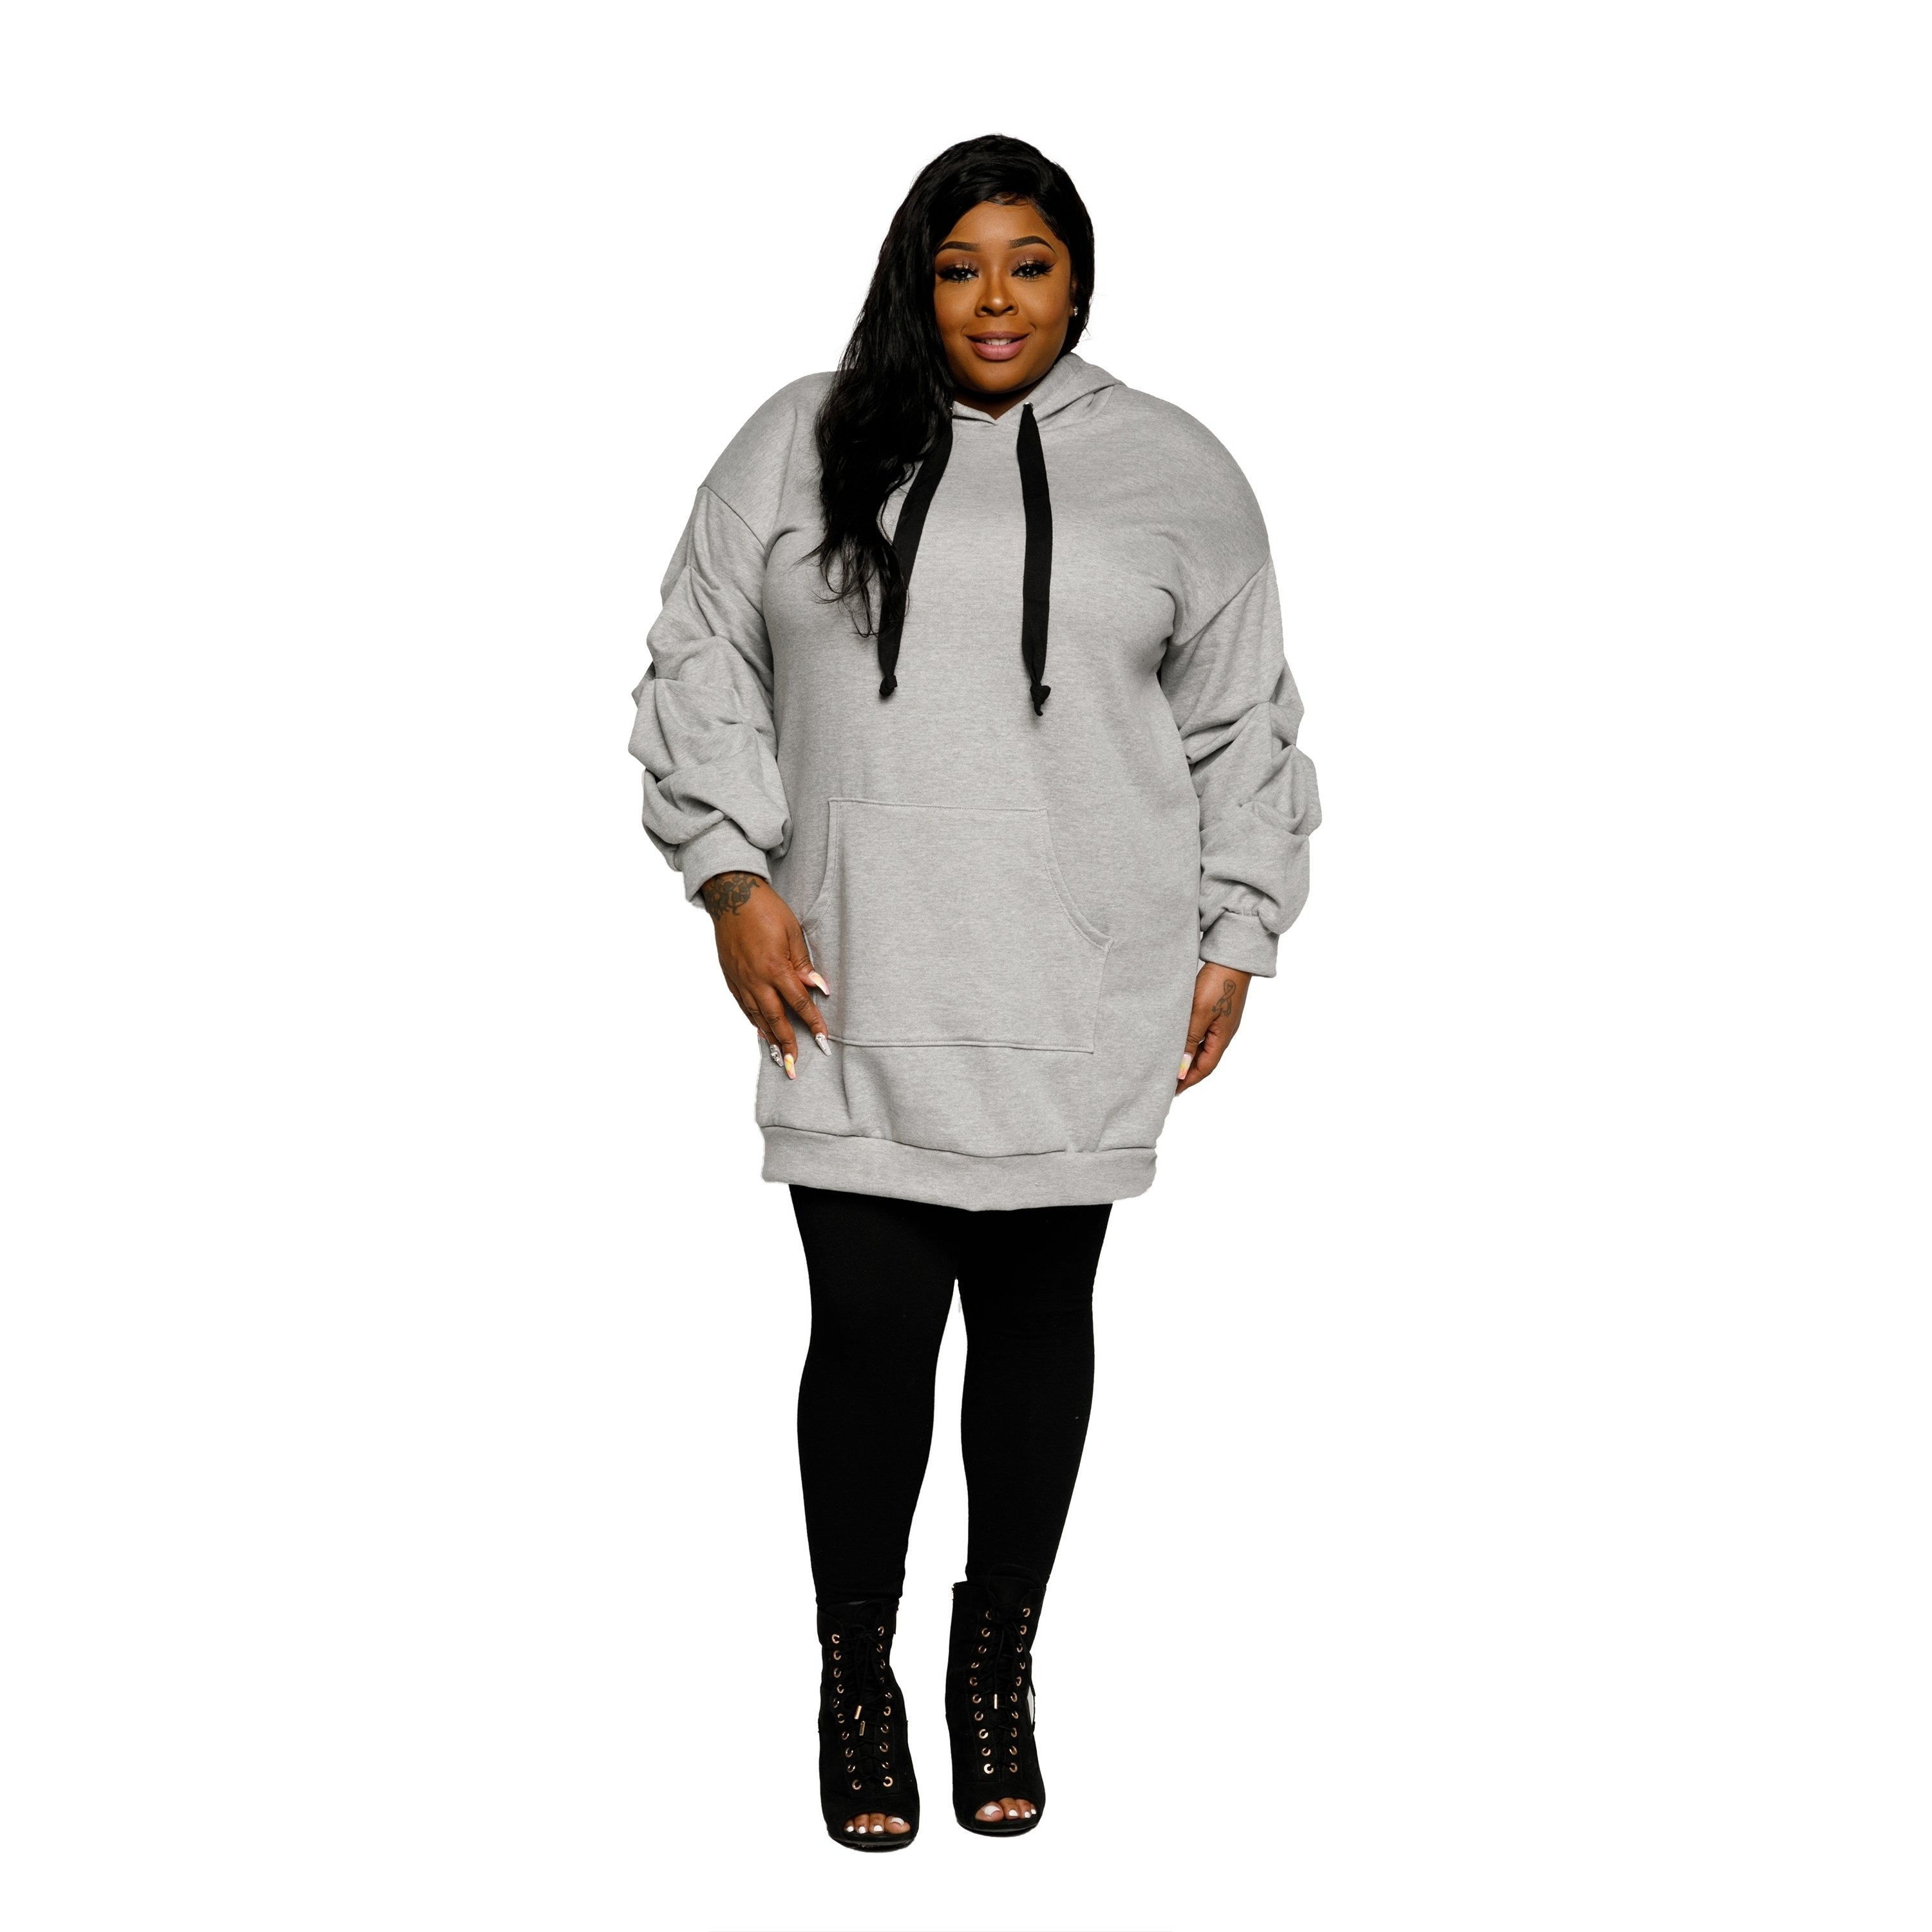 034f797d65 Shop Xehar Womens Plus Size Casual Oversized Ruched Hoodie Sweater Dress -  Free Shipping On Orders Over  45 - Overstock - 20175407